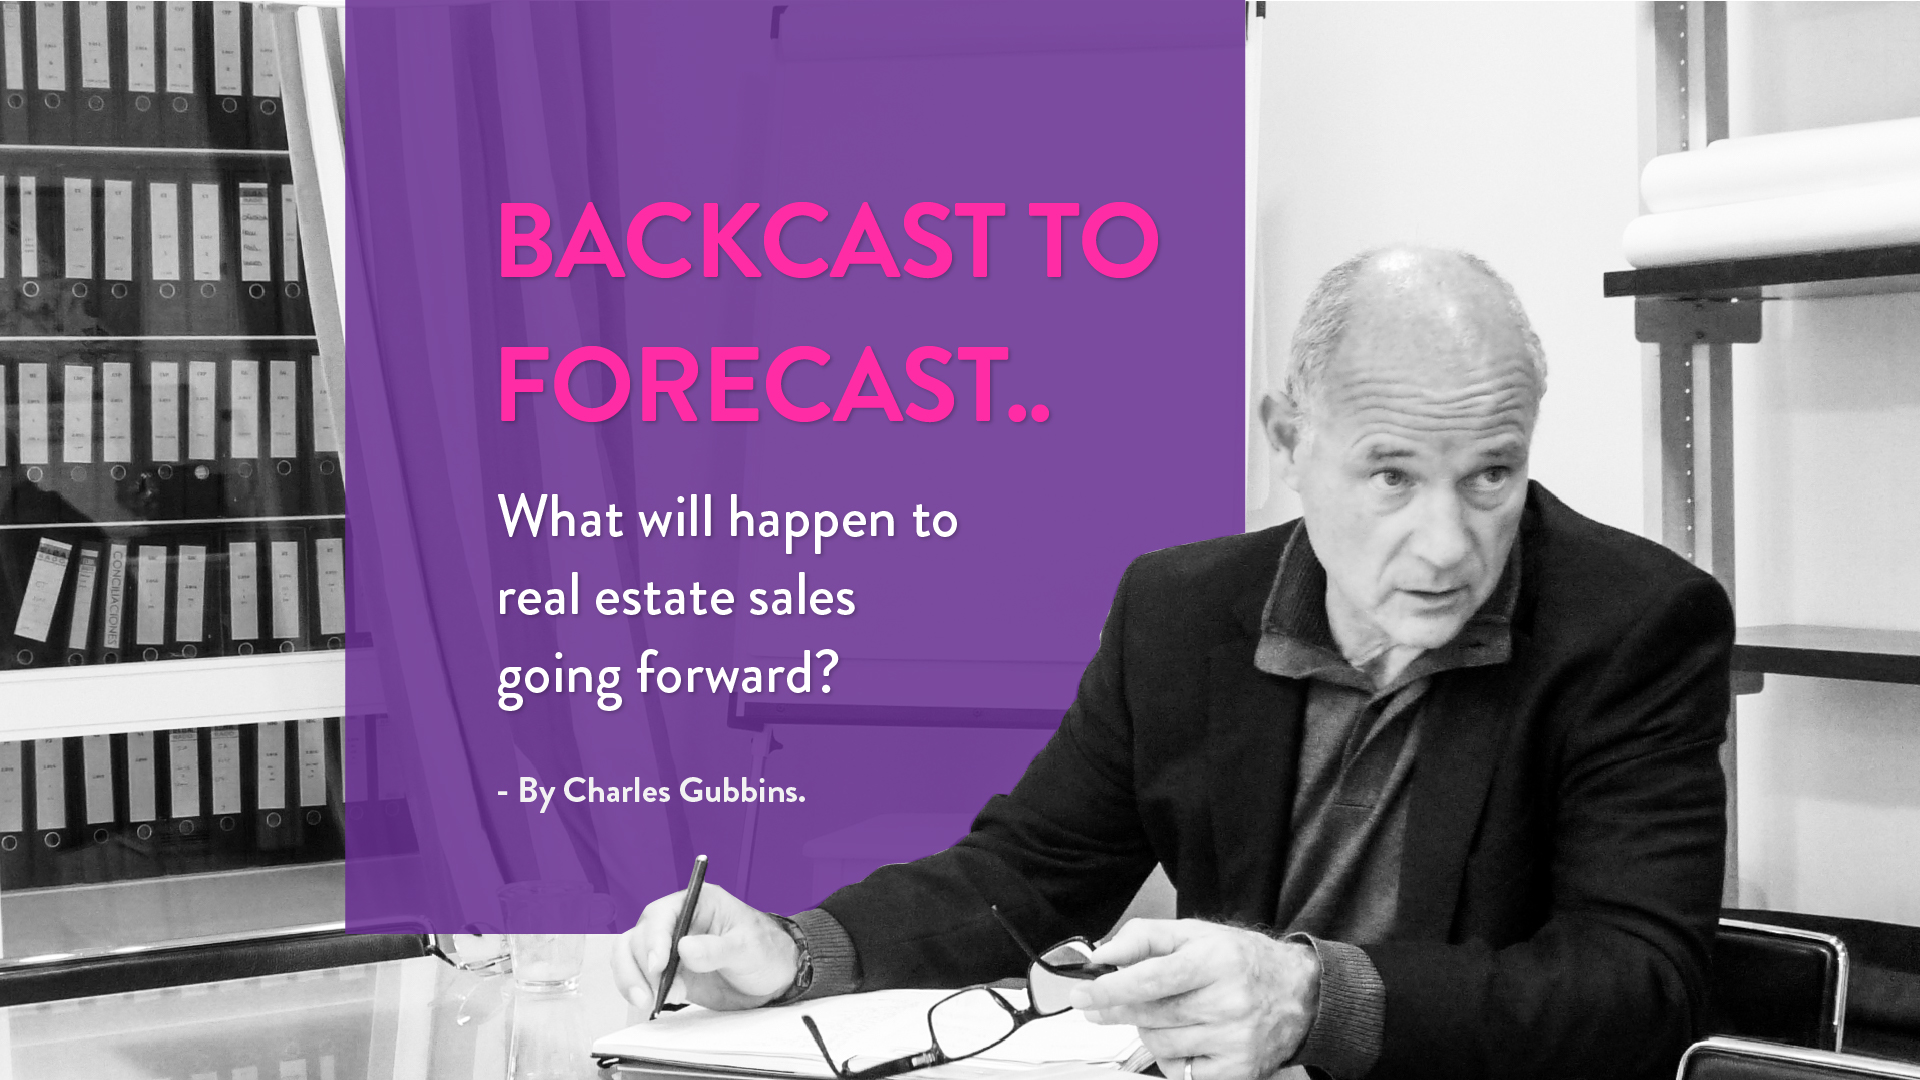 backcast-to-forecast-charles-gubbins-noll-sotogrande-real-estate-may-2020-1